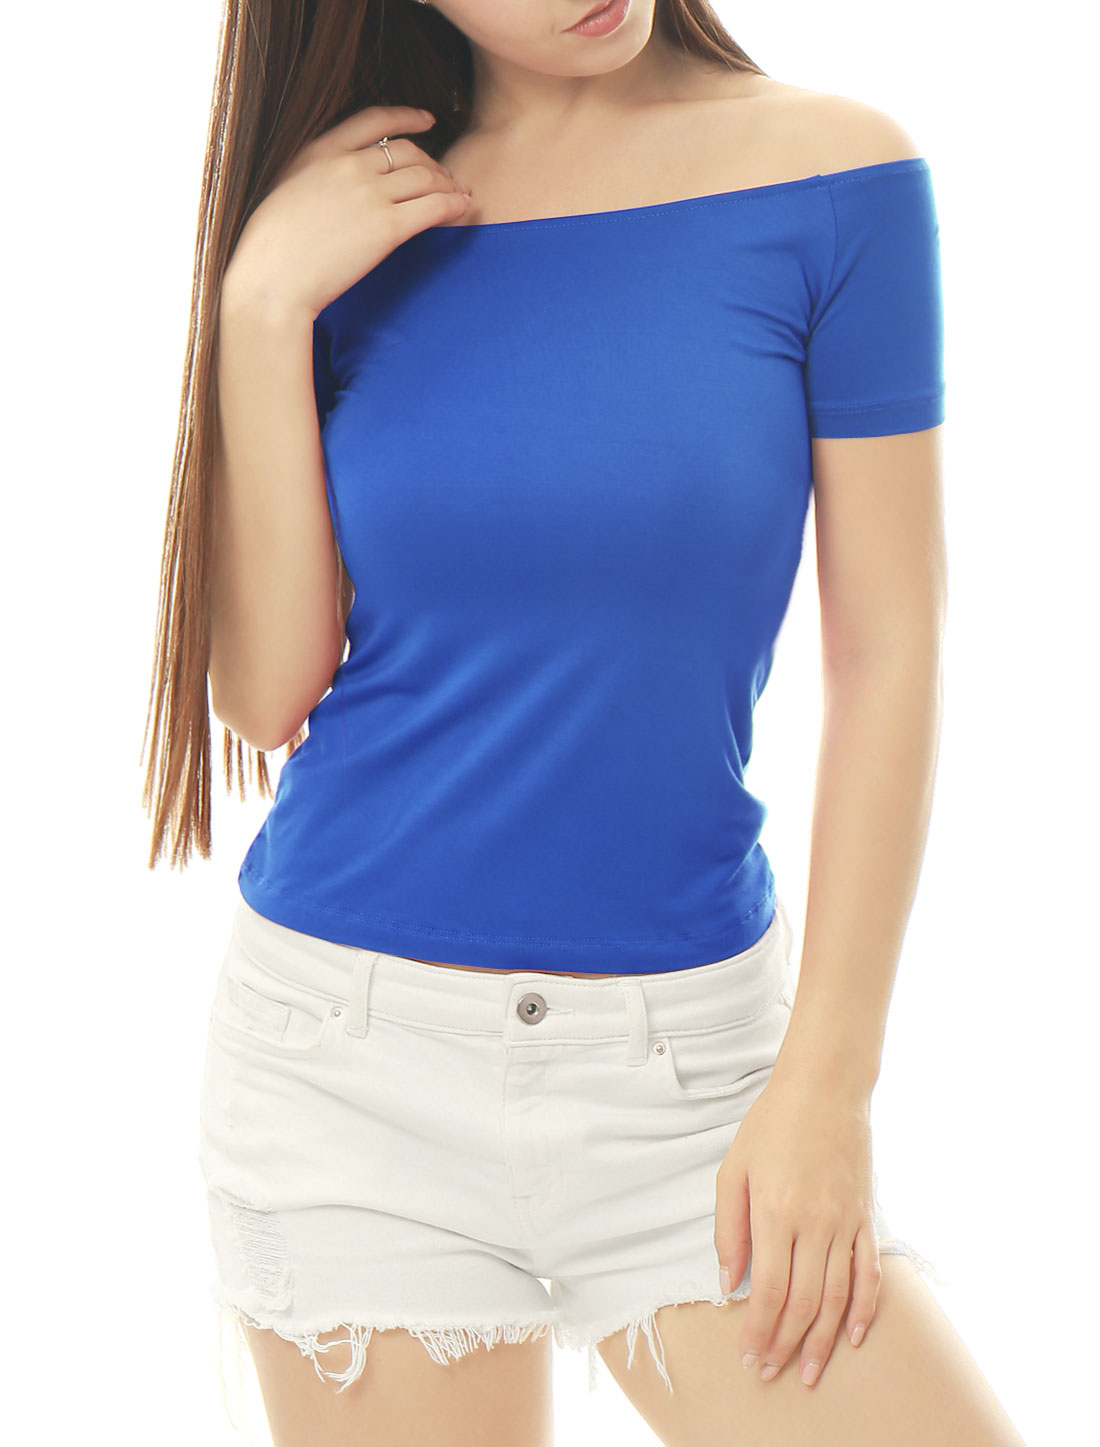 Women Short Sleeves Slim Fit Off the Shoulder Top Royal Blue L